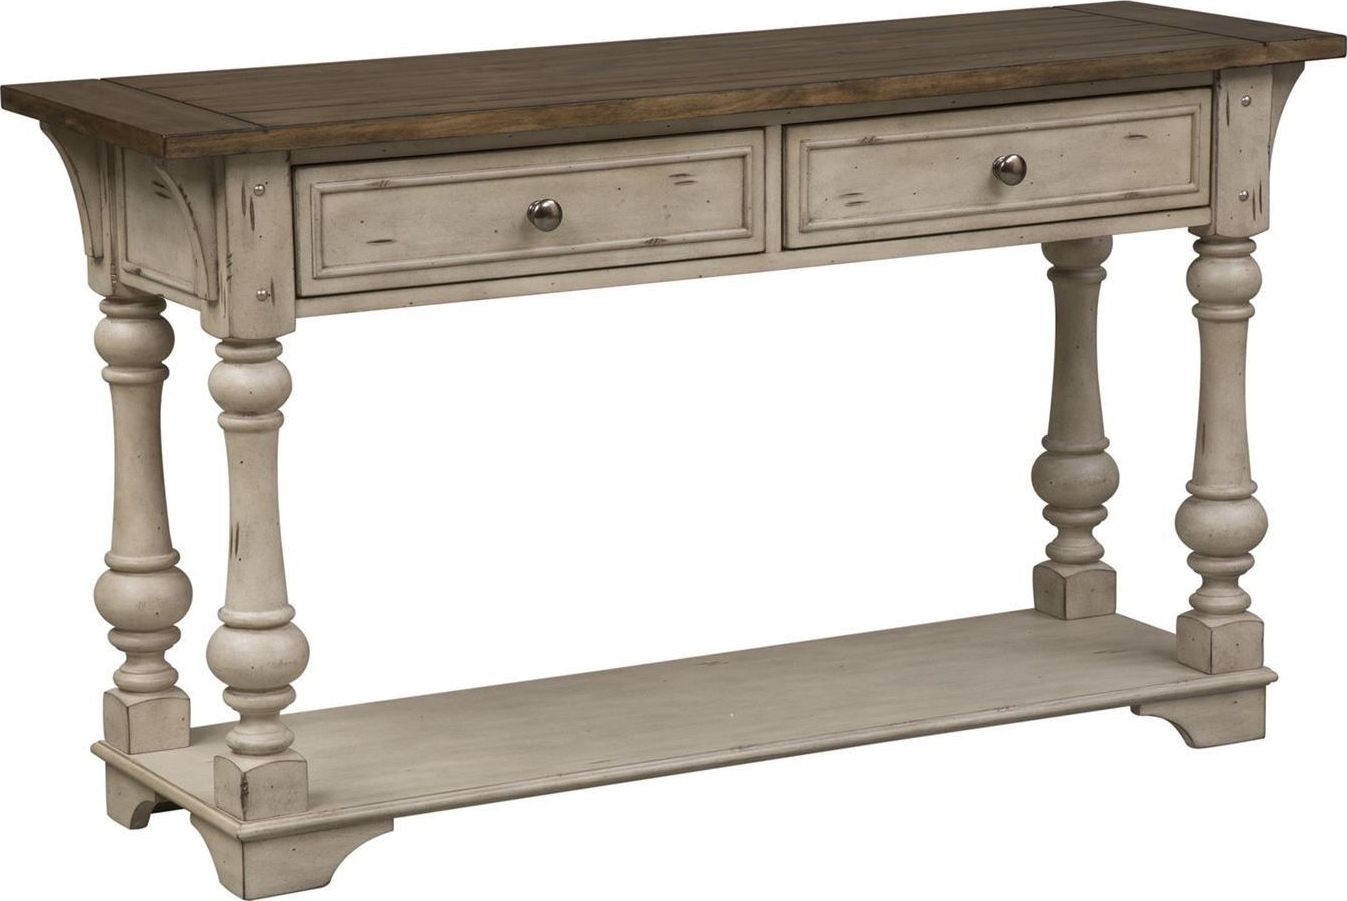 antique white sofa table Morgan Creek Antique White Sofa Table from Liberty | Coleman  antique white sofa table